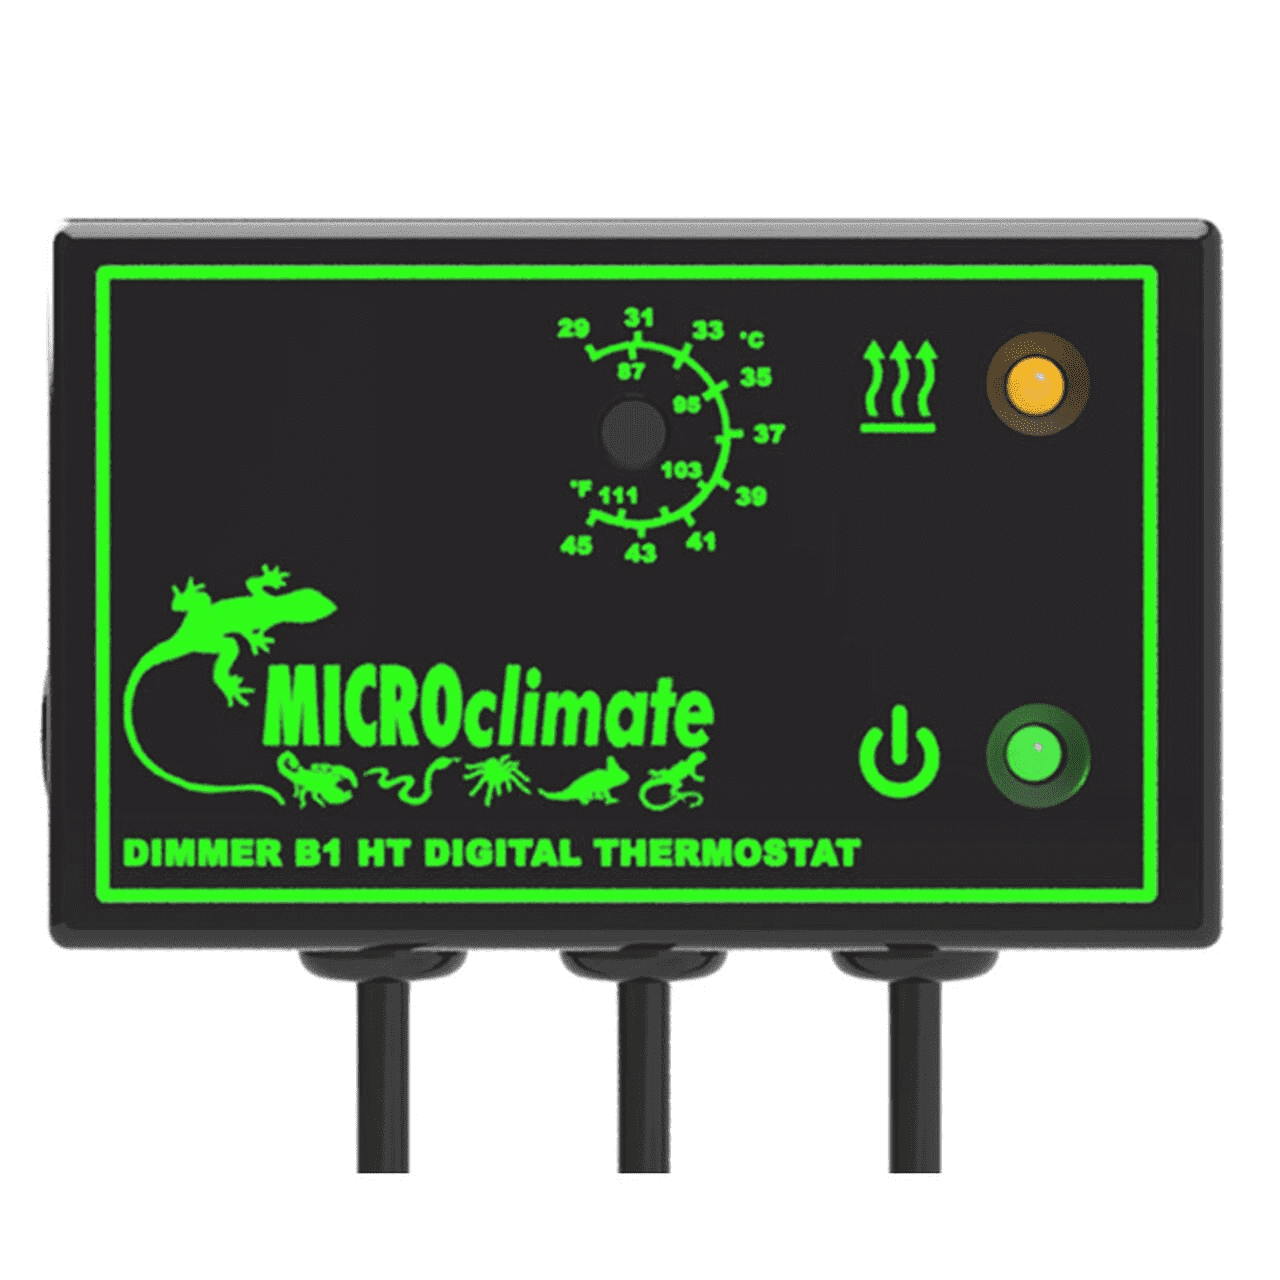 Microclimate B1 HT Digital dimming thermostats